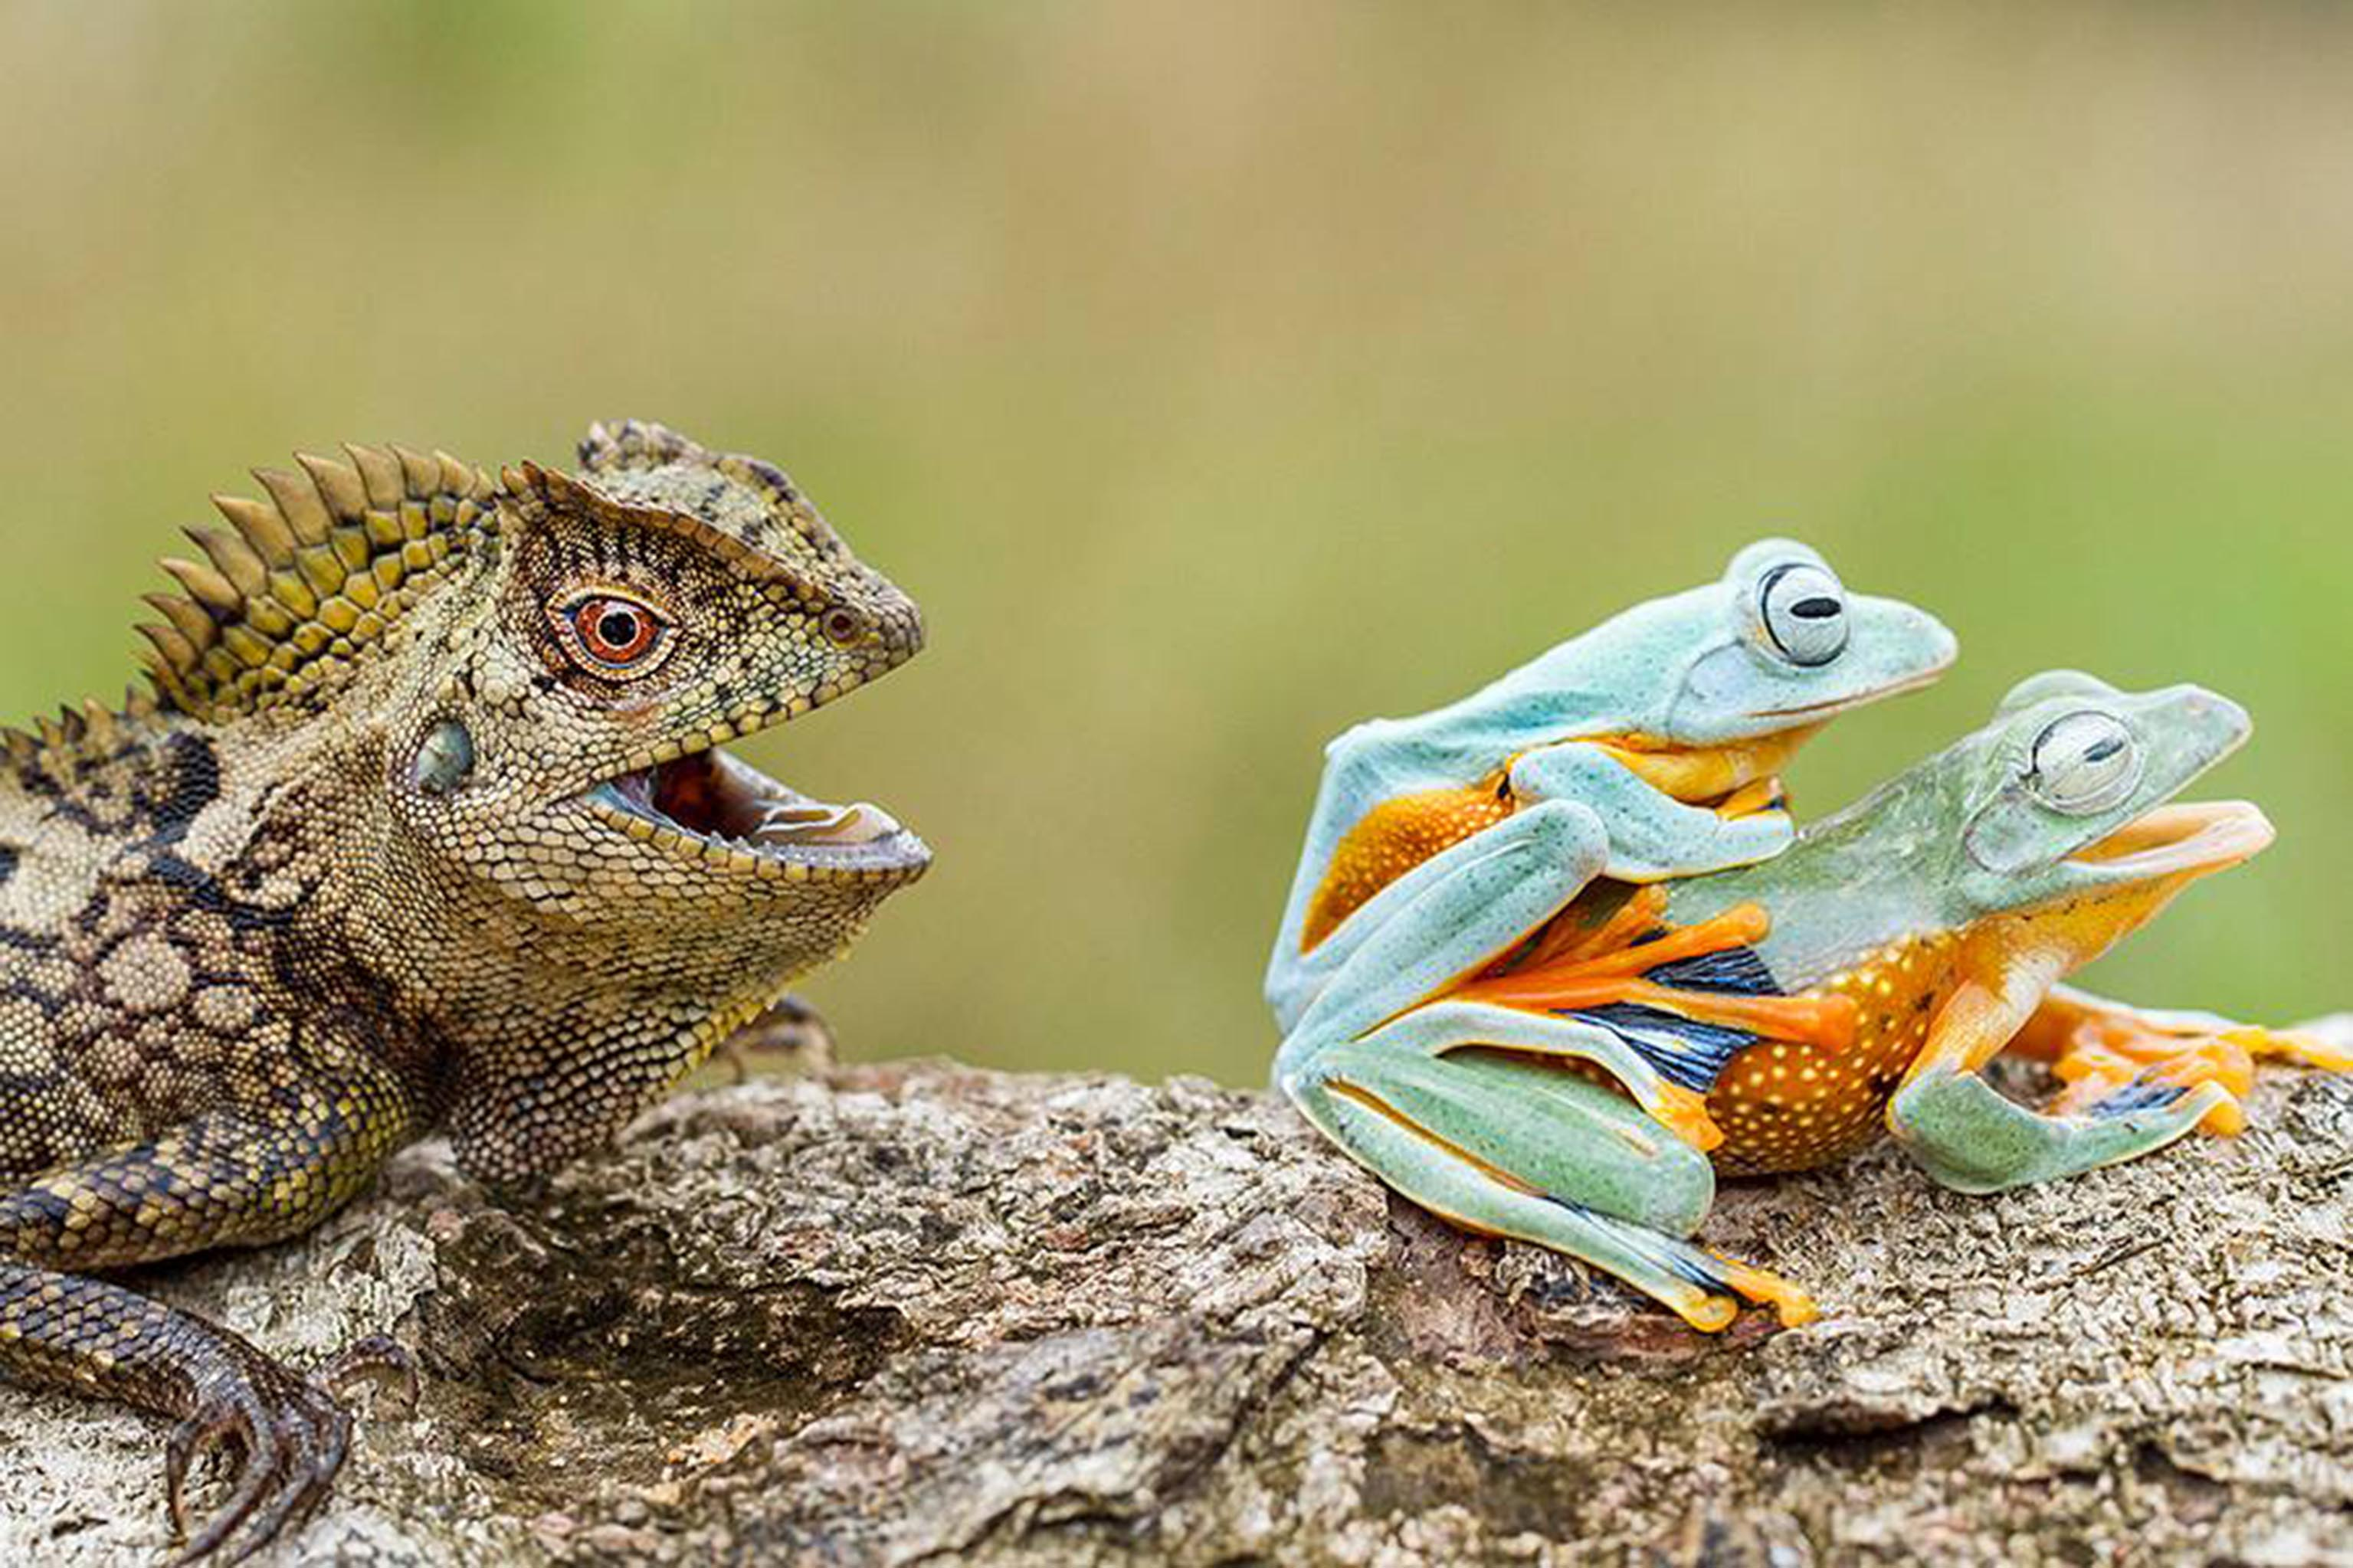 stories animals froggy style these tongue in cheek images give a different meaning to frogs porn